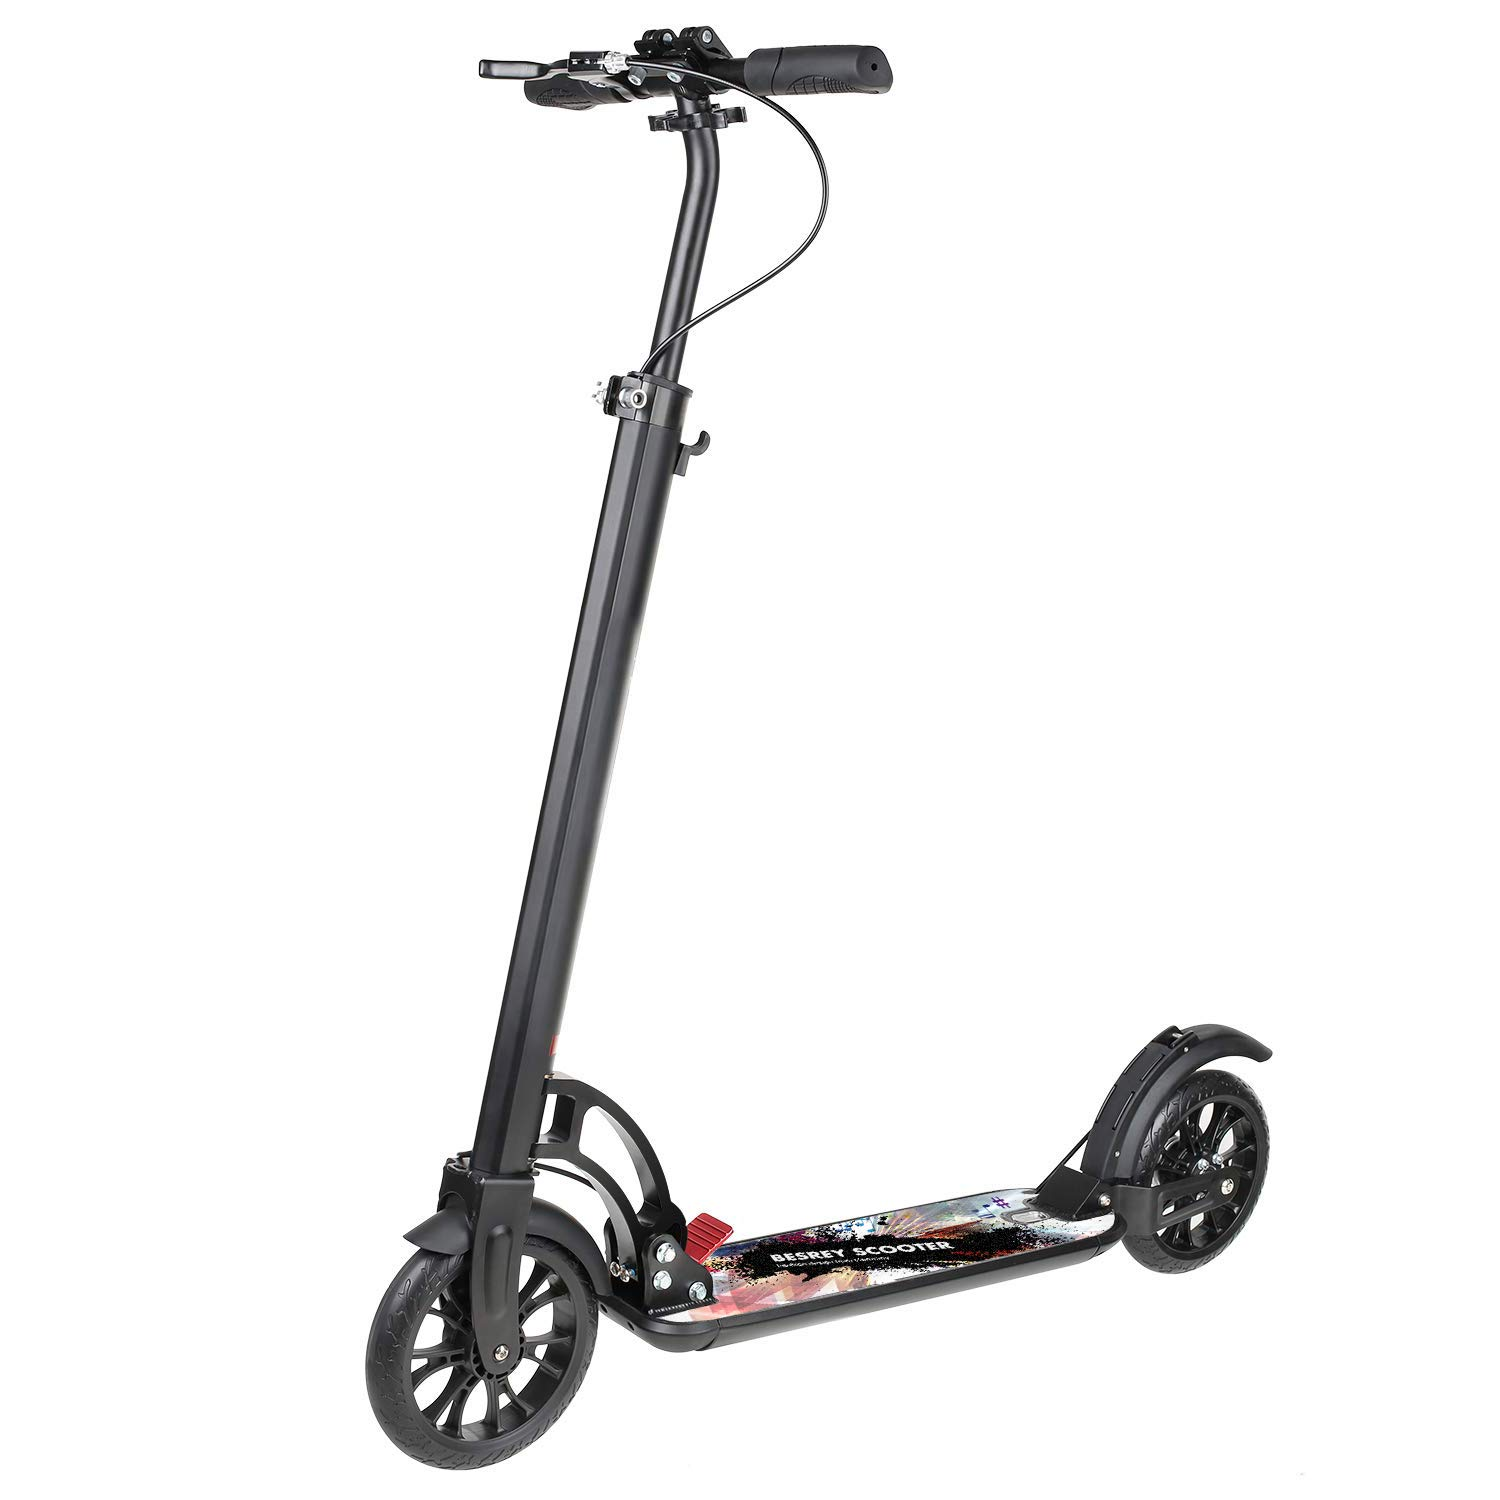 besrey Kick Scooter, Scooter Big Wheel 200 mm for Adult and Teen/Kids Age 8 UP with Hand Brake (Black with Carry Strap) by besrey